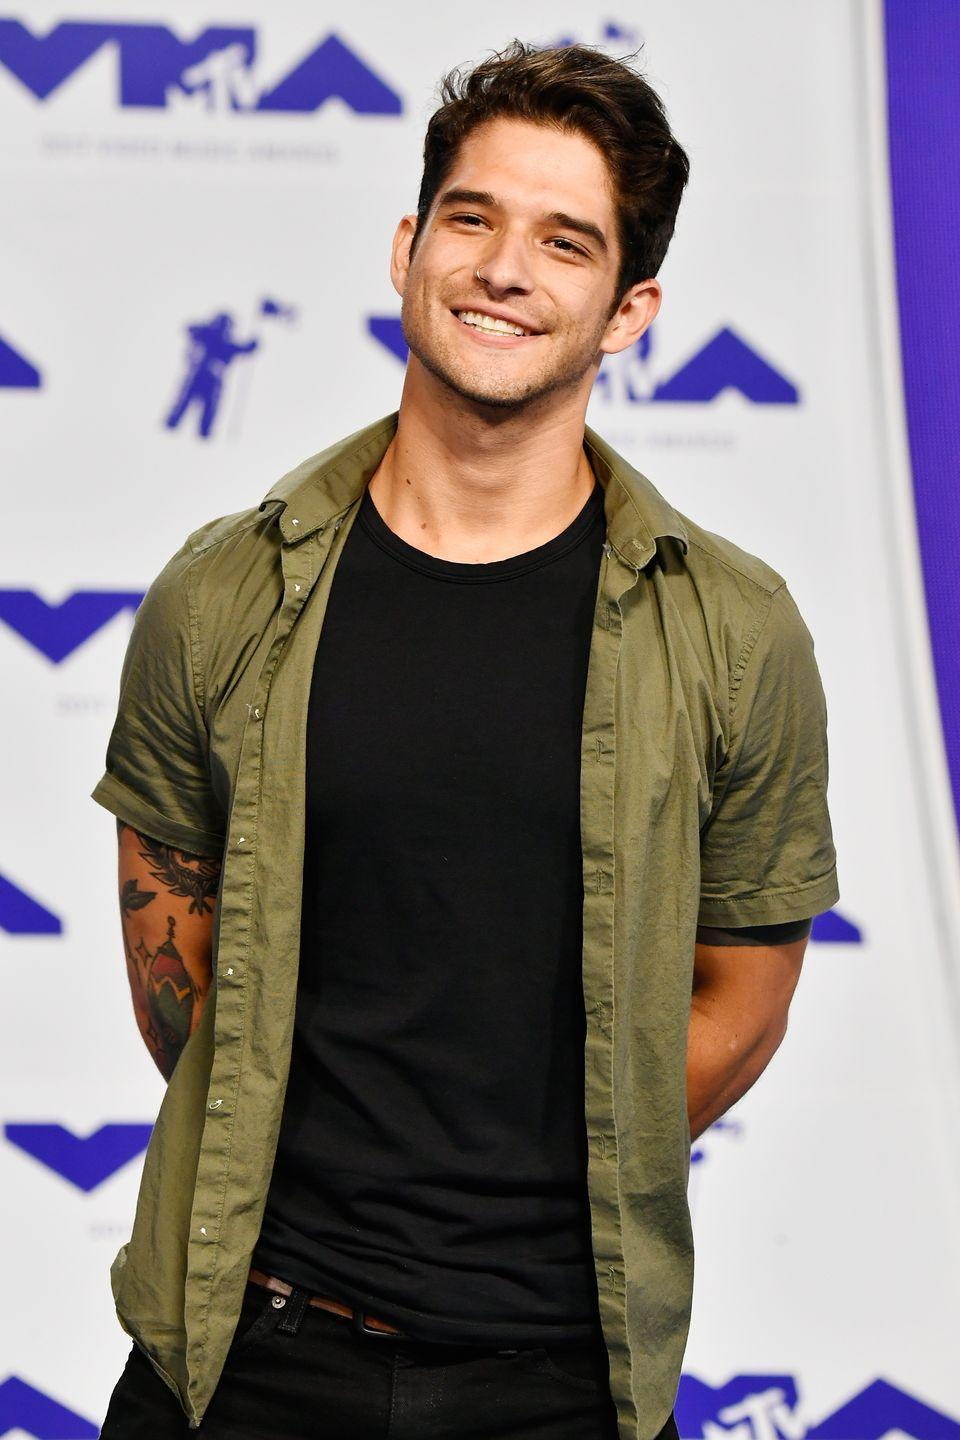 """<p>Cyrus's first boyfriend may have been <em>Teen Wolf</em>'s Tyler Posey. In a 2015 <em><a href=""""https://www.etonline.com/news/167008_tyler_posey_talks_pre_teen_romance_with_miley_cyrus_advocating_for_gay_friends"""" rel=""""nofollow noopener"""" target=""""_blank"""" data-ylk=""""slk:Entertainment Tonight"""" class=""""link rapid-noclick-resp"""">Entertainment Tonight</a> </em>interview, the actor said he and Cyrus met on the set of Billy Ray Cyrus's show <em>Doc</em>. They became """"boyfriend and girlfriend"""" when she was 7, and he was 9. According to Posey, he only has happy memories with Cyrus, who was his first kiss. """"We were so damn young,"""" he recalled, adding, """"I would get excited when we would hold hands.""""</p>"""